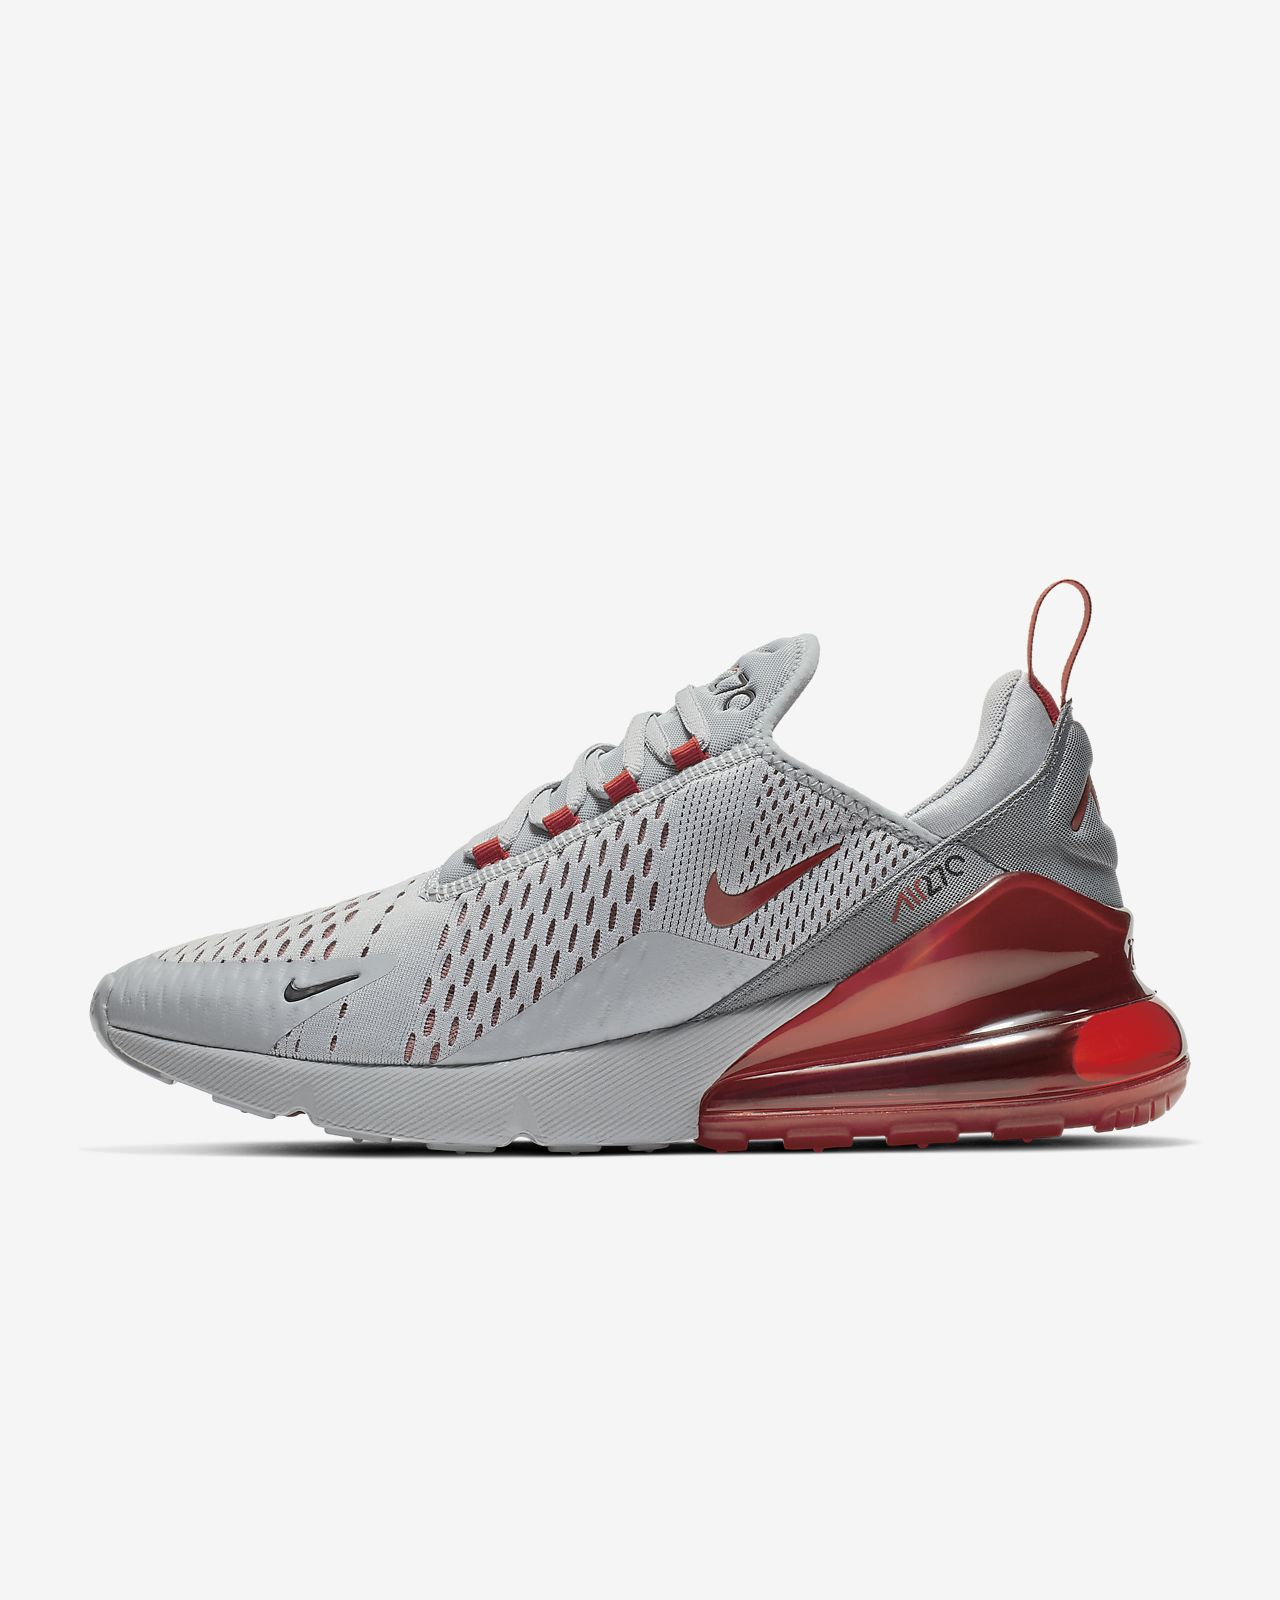 8772f9dd03c0 Nike Air Max 270 Men s Shoe. Nike.com IN